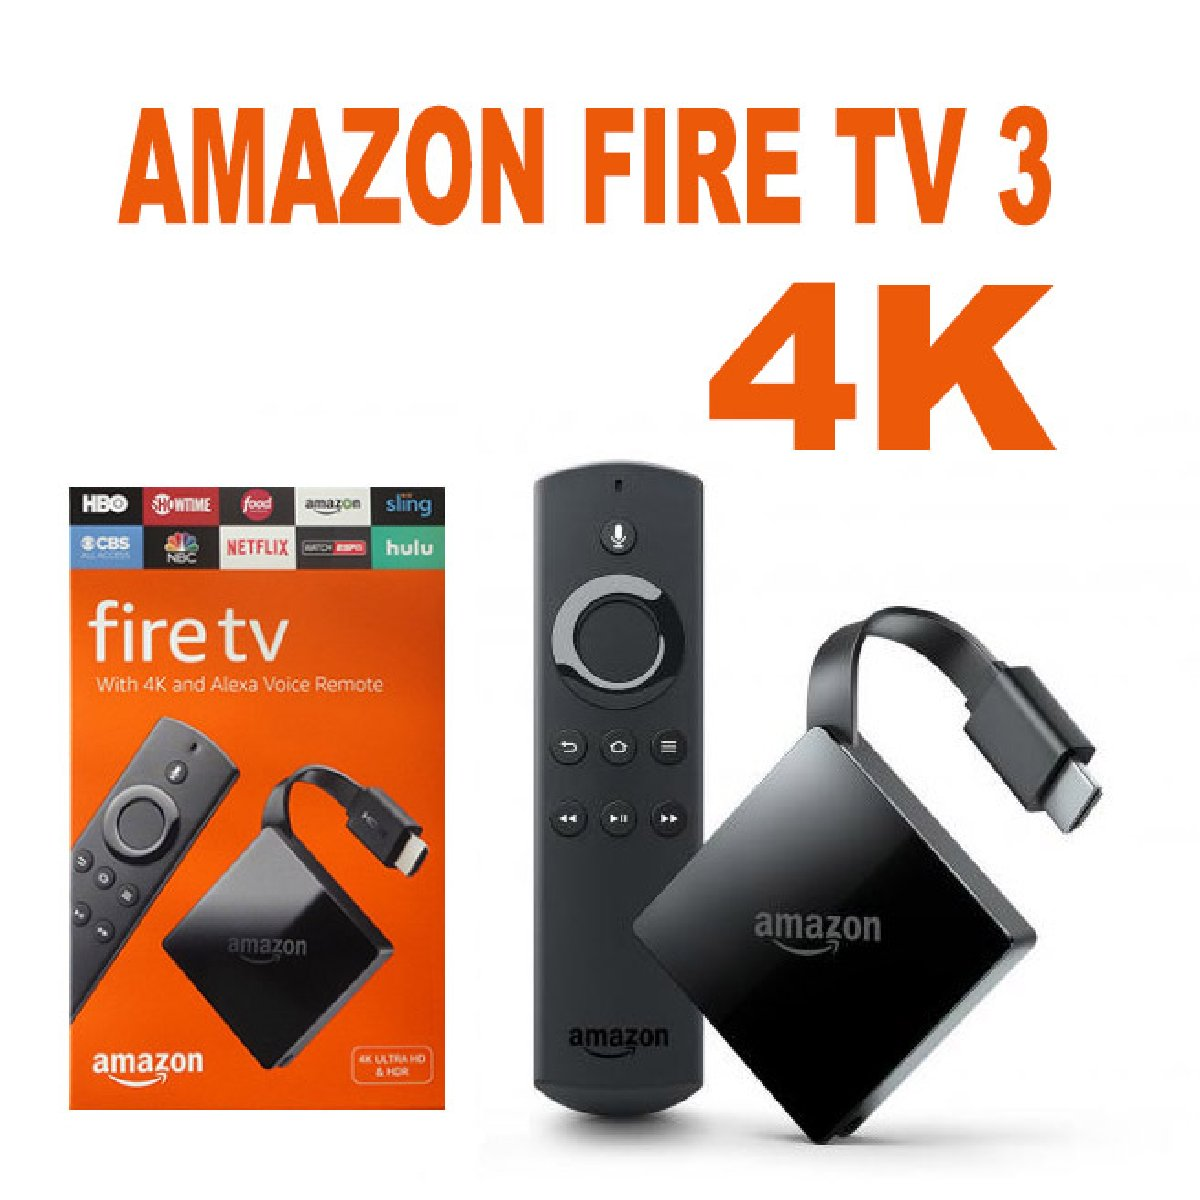 bran new amazon fire tv boxes the latest version for sale. Black Bedroom Furniture Sets. Home Design Ideas